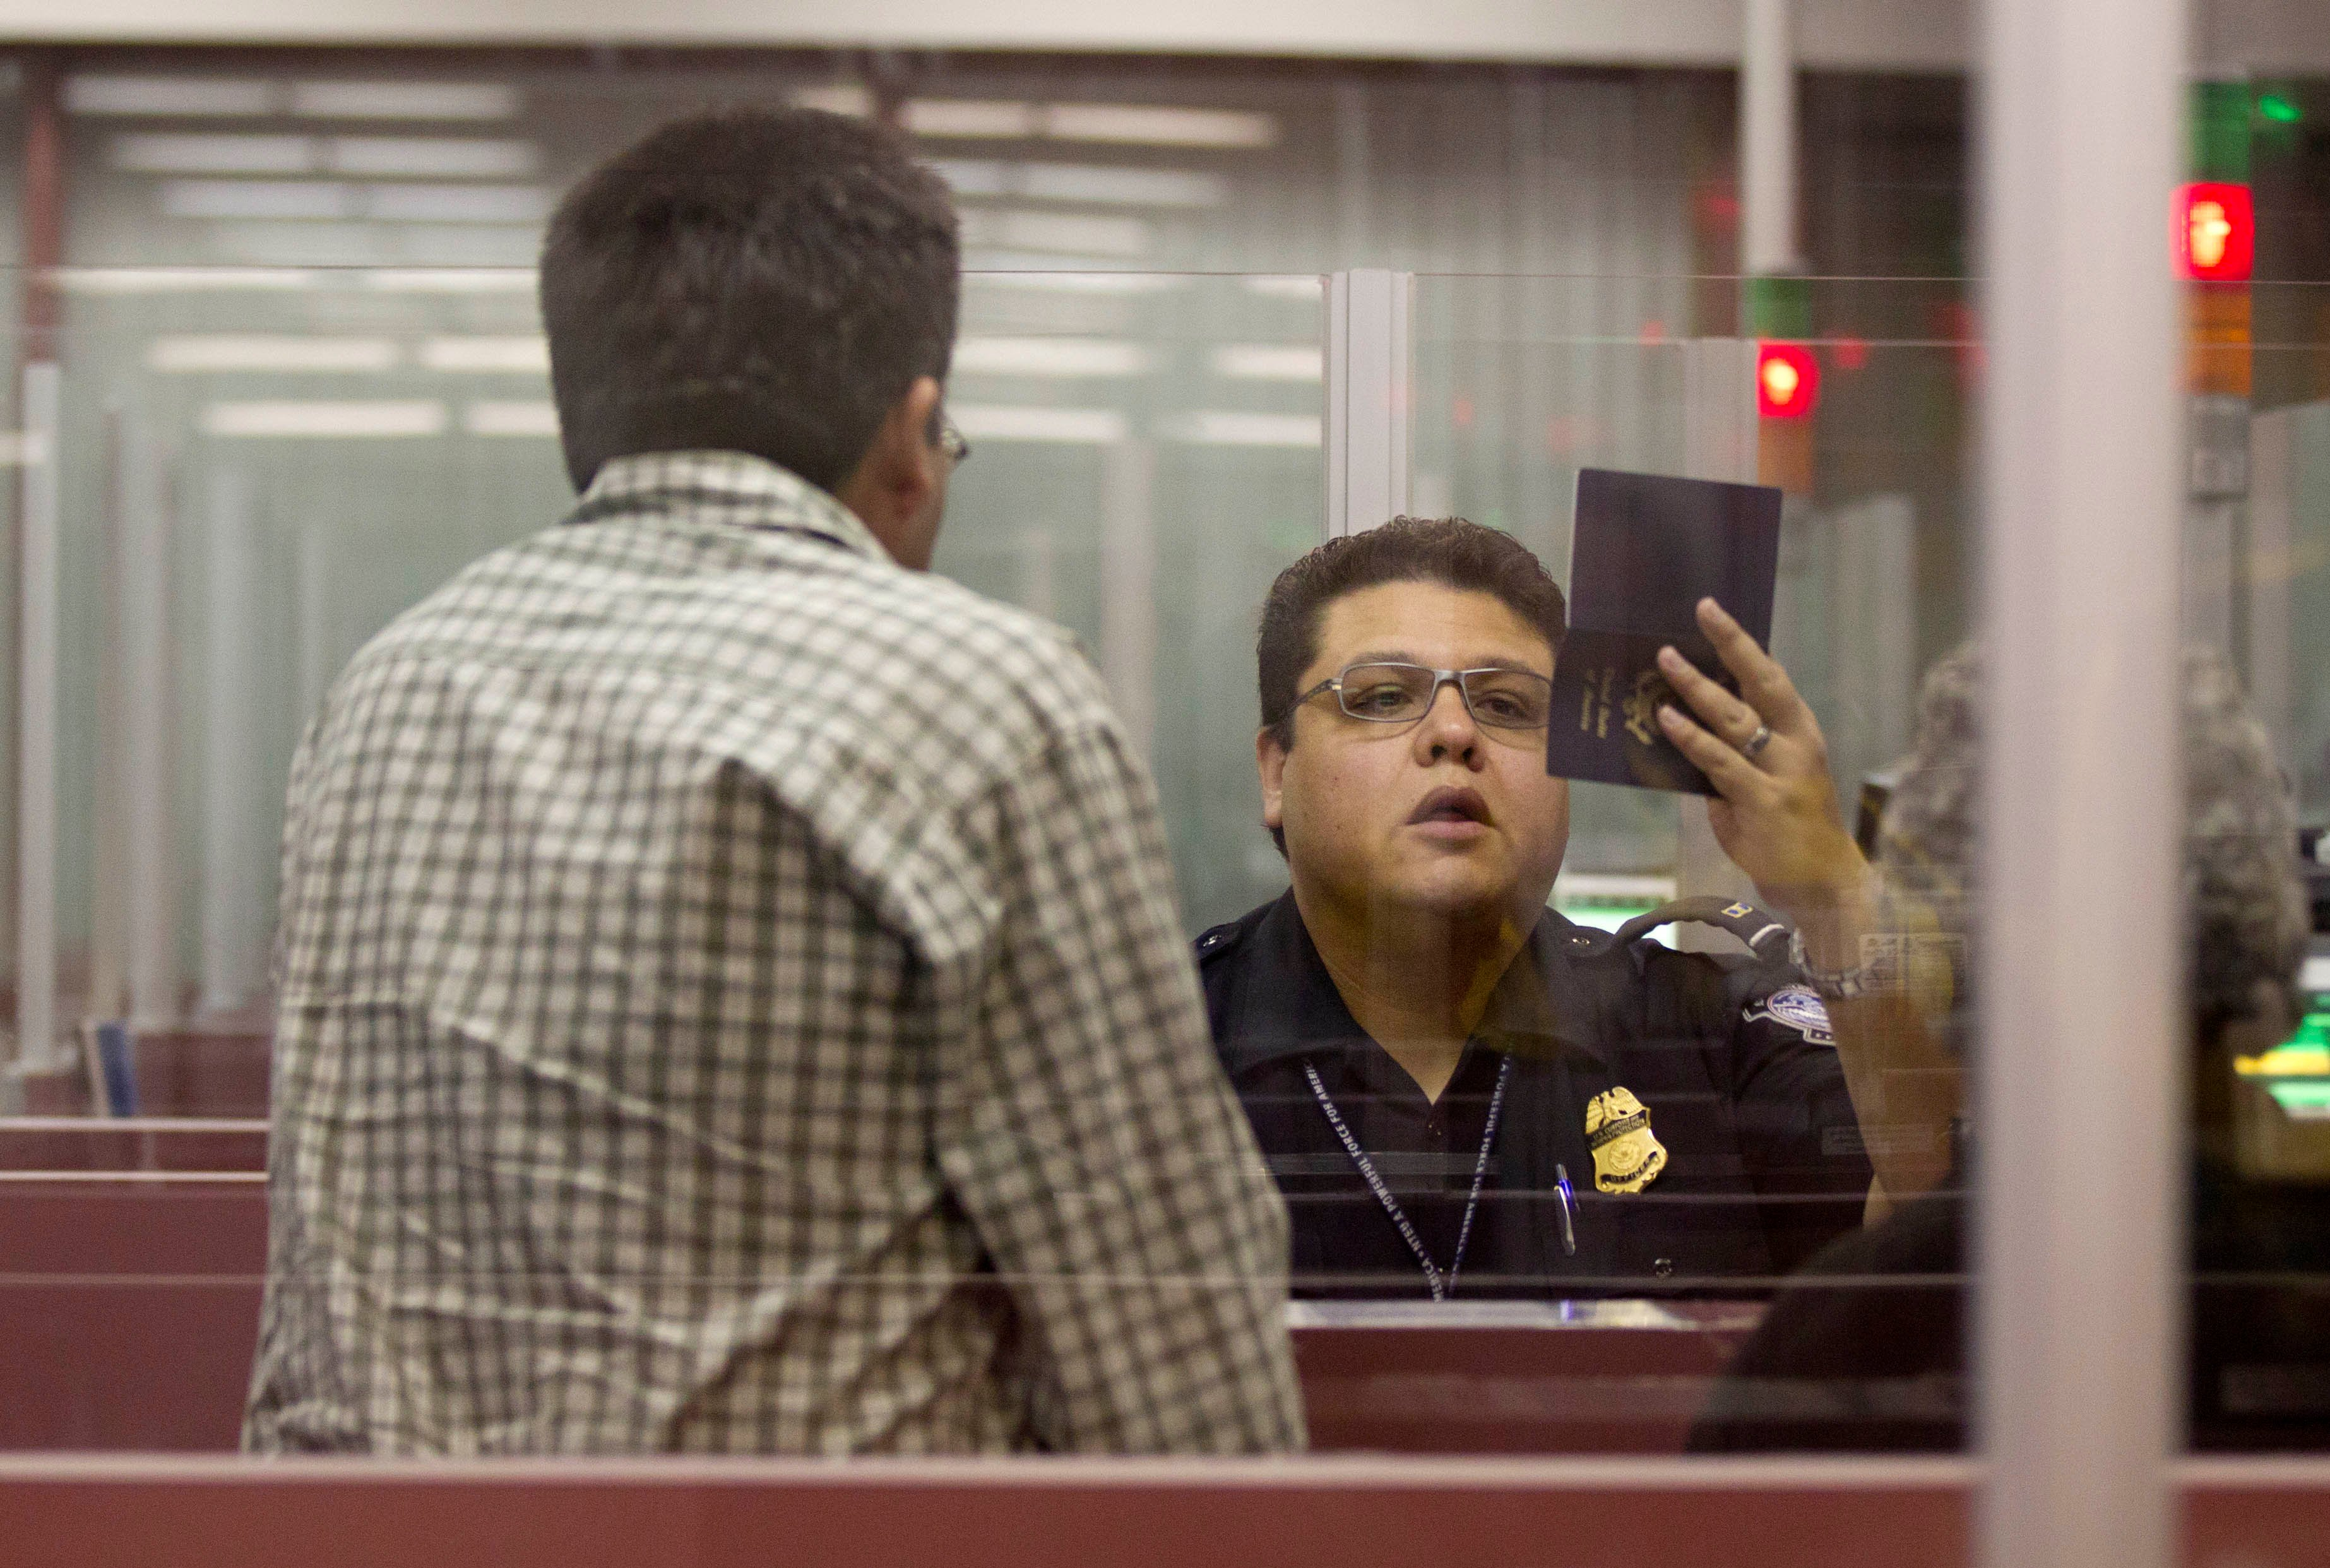 A Customs and Border Protection officer checks the passport of a non-resident visitor to the United States inside immigration control at McCarran International Airport, Tuesday, Dec. 13, 2011, in Las Vegas. (AP Photo/Julie Jacobson)